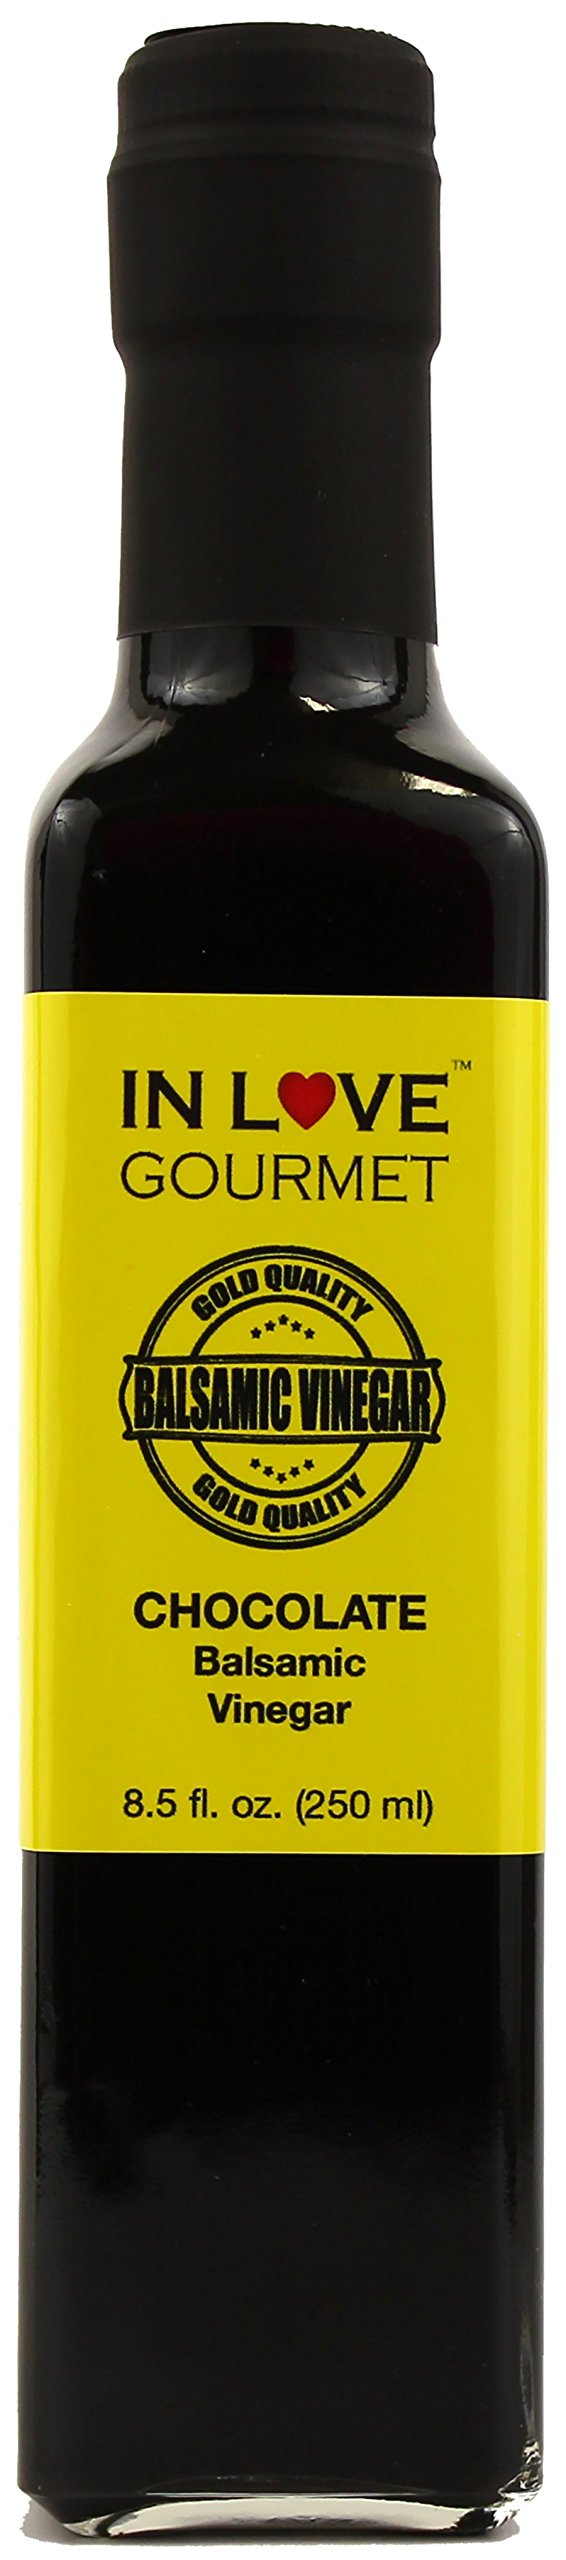 In Love Gourmet Chocolate Balsamic Vinegar 250ML/8.5oz Great on Strawberries and Fruit Salads, Amazing on Grilled Steaks and Chicken